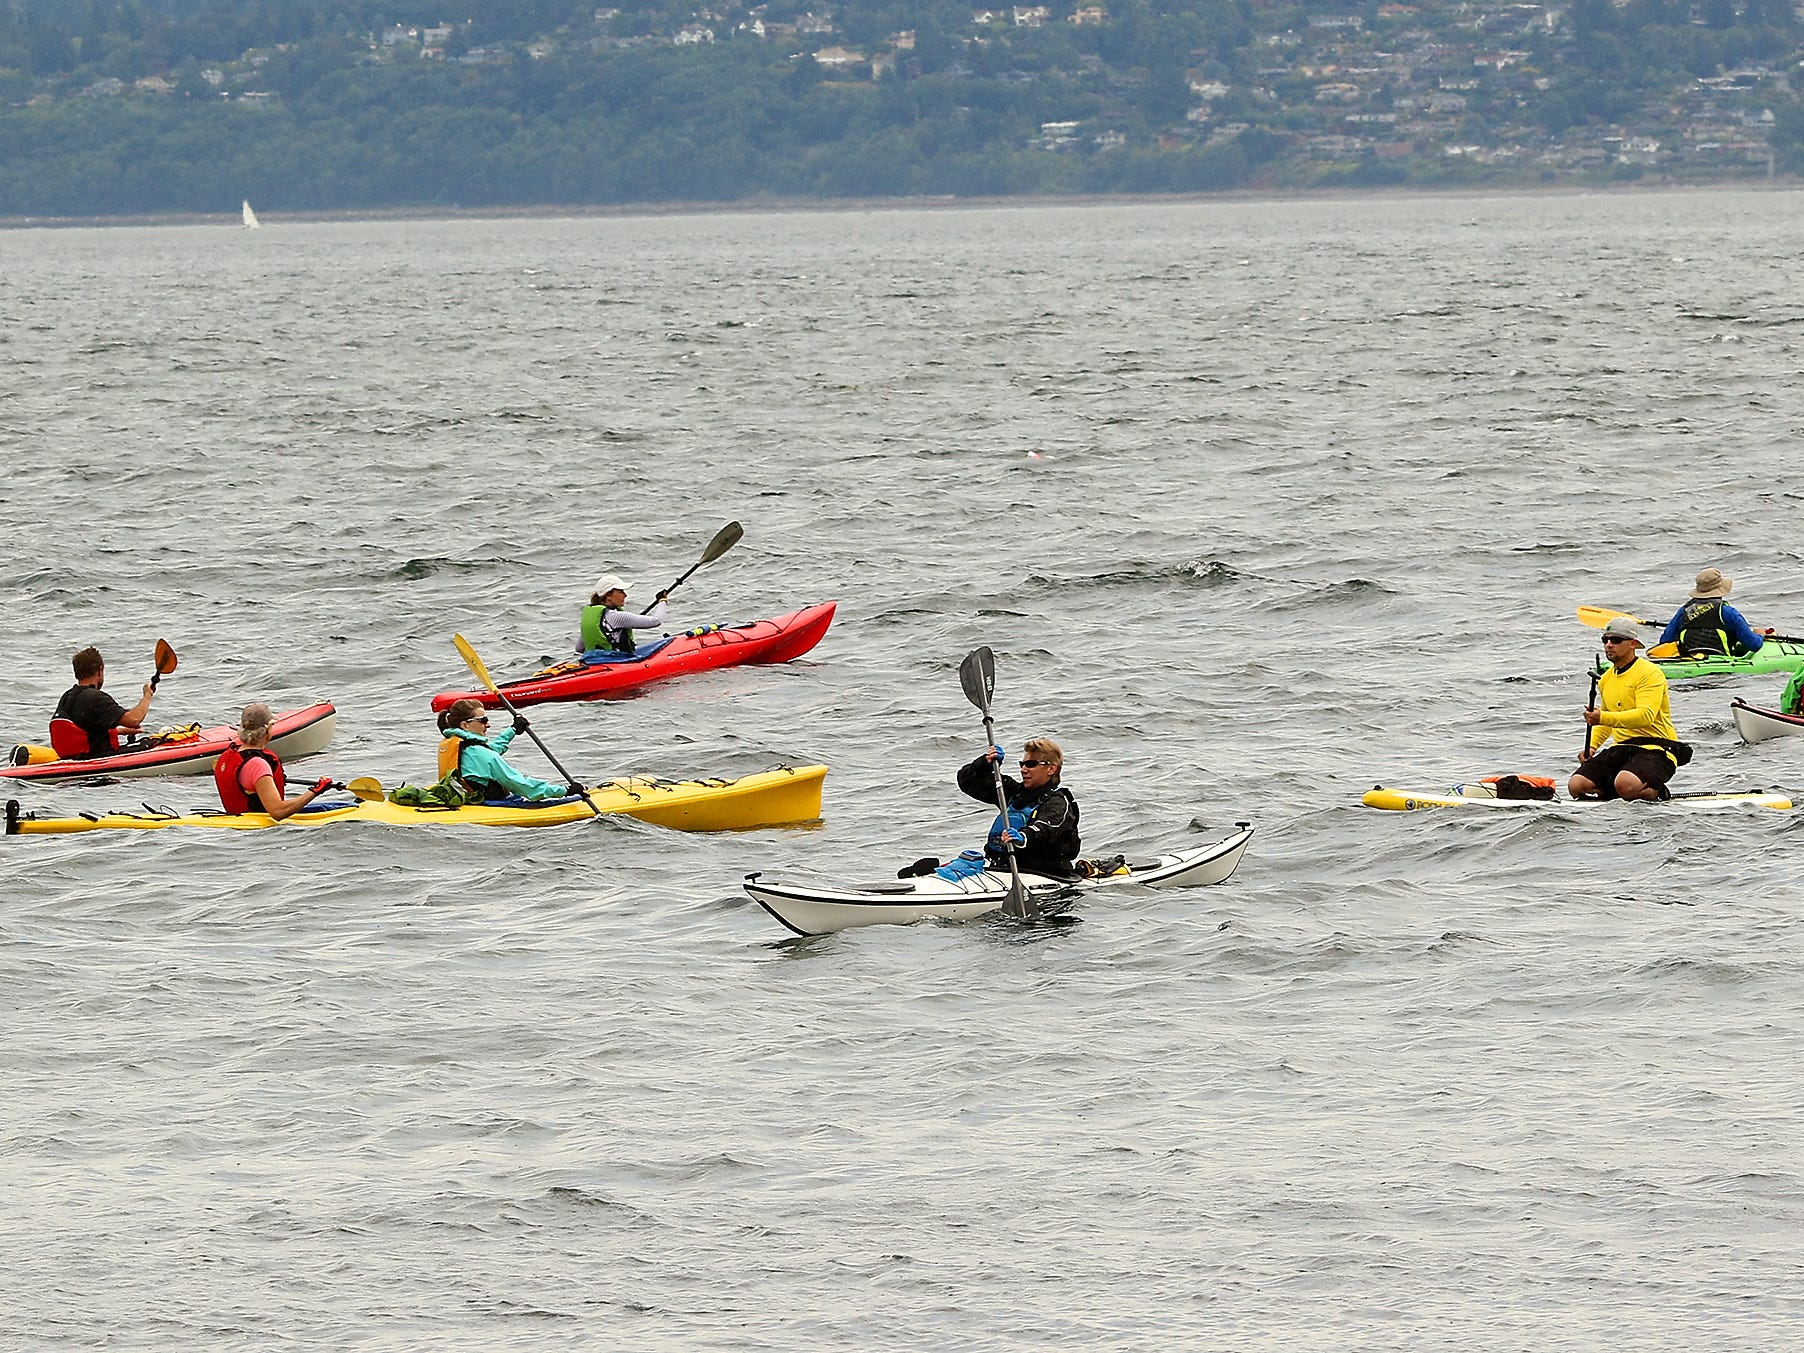 Participants in Olympic Outdoor Center's Paddle Kitsap prepare for the start of their journey to Poulsbo at Bainbridge Island's Fay Bainbridge Park on Saturday, August 11, 2018.